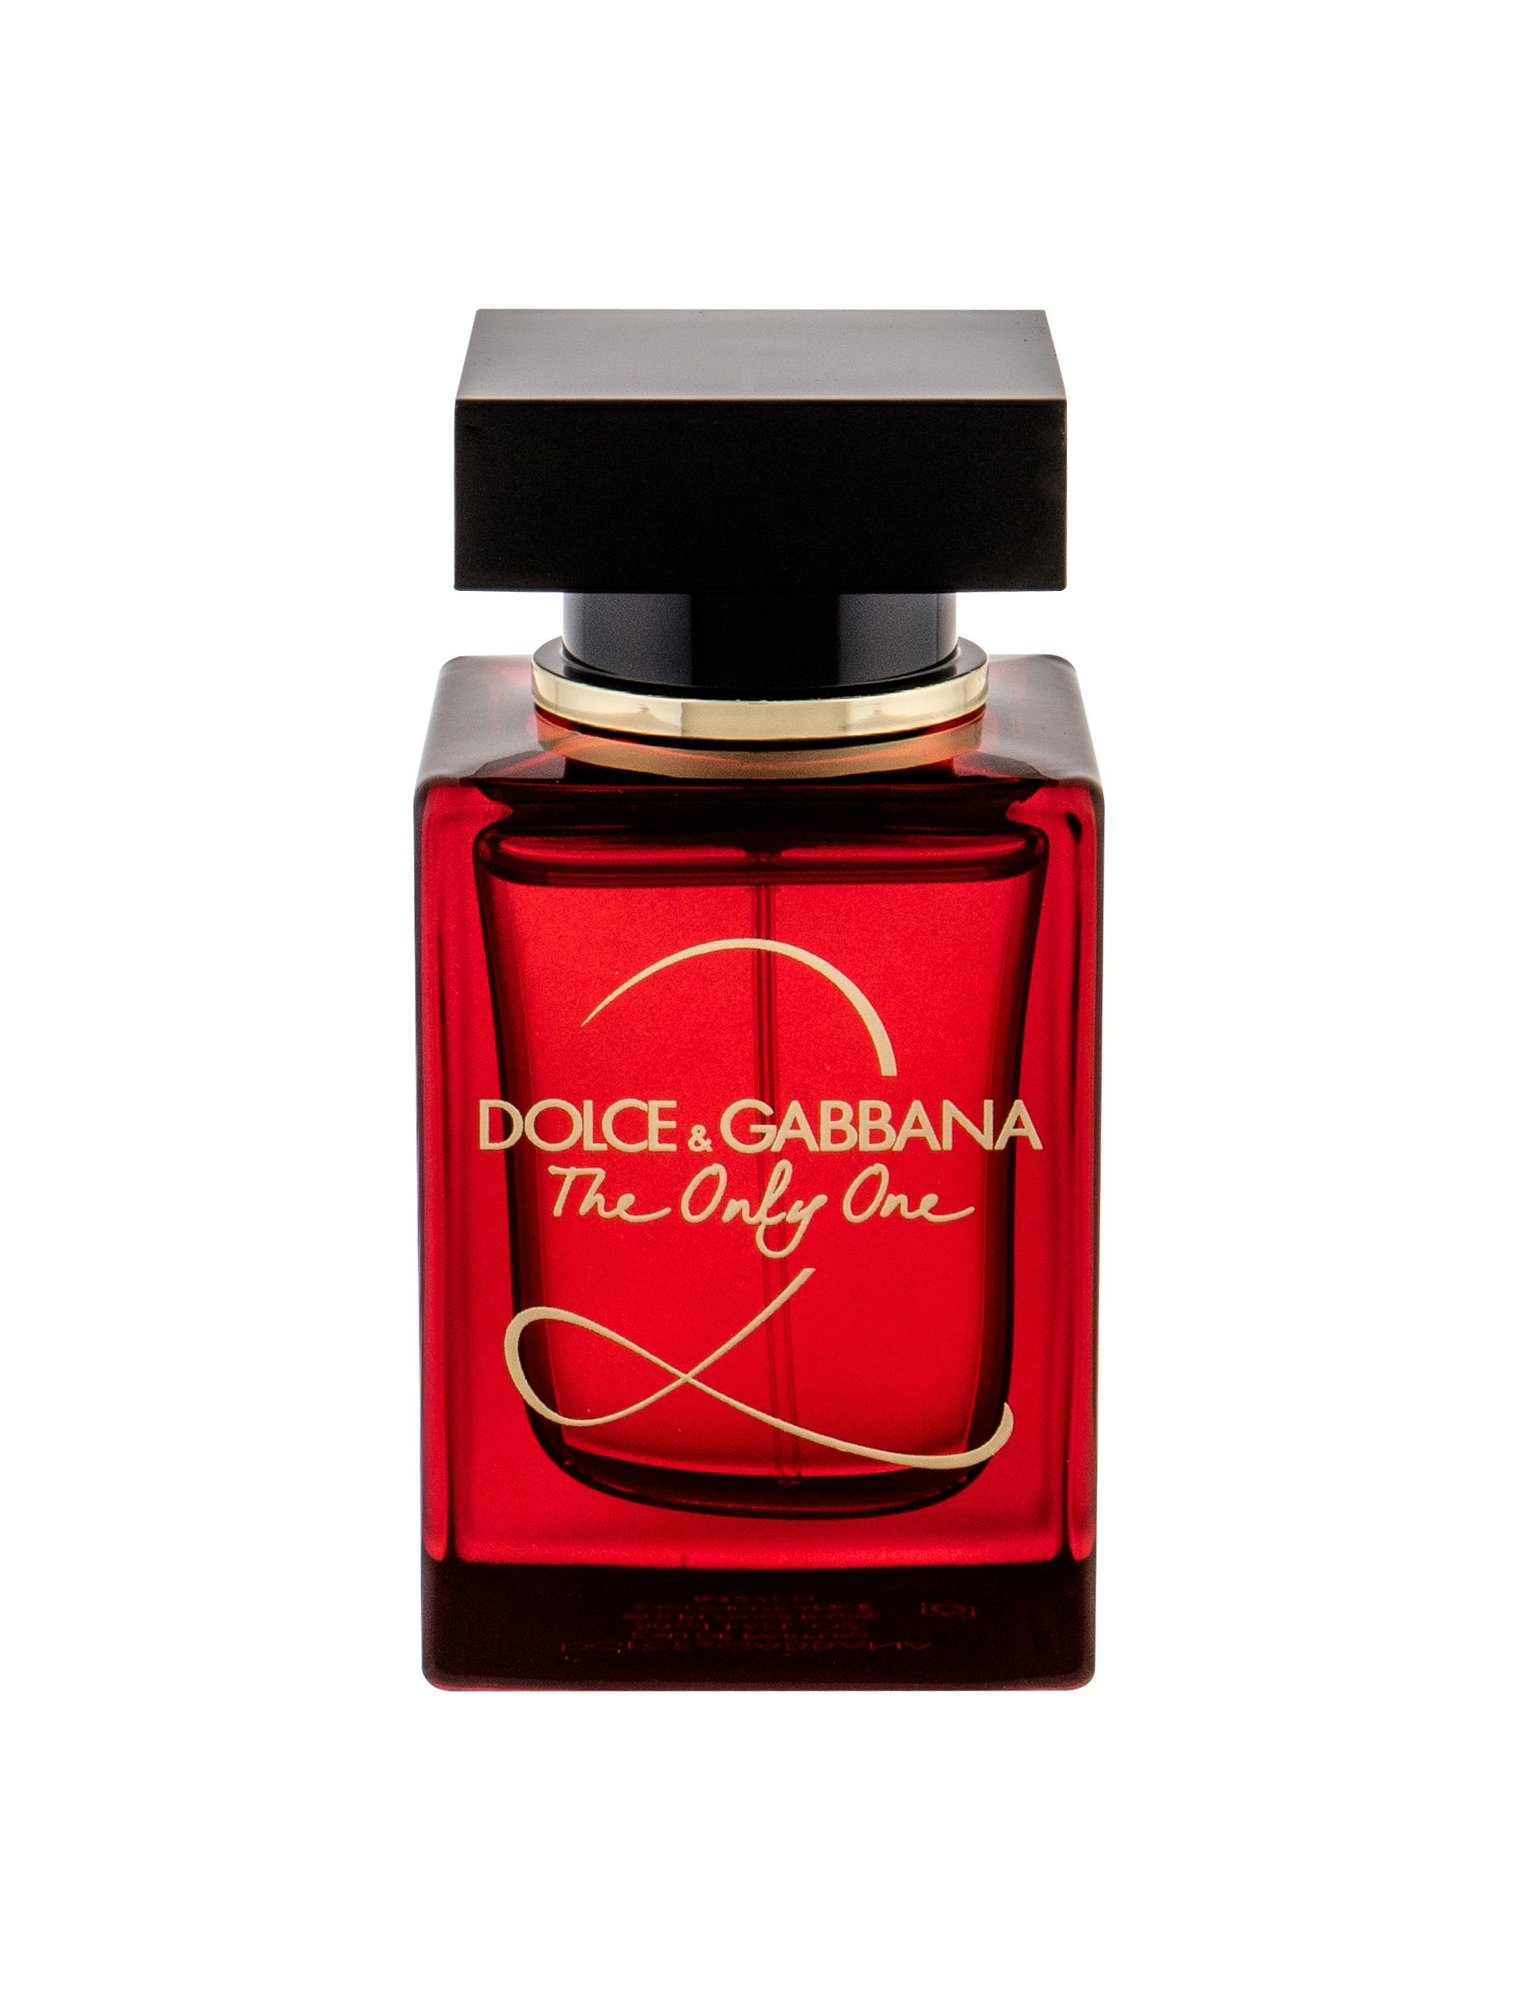 Dolce&Gabbana The Only One 2 Eau de Parfum 50ml